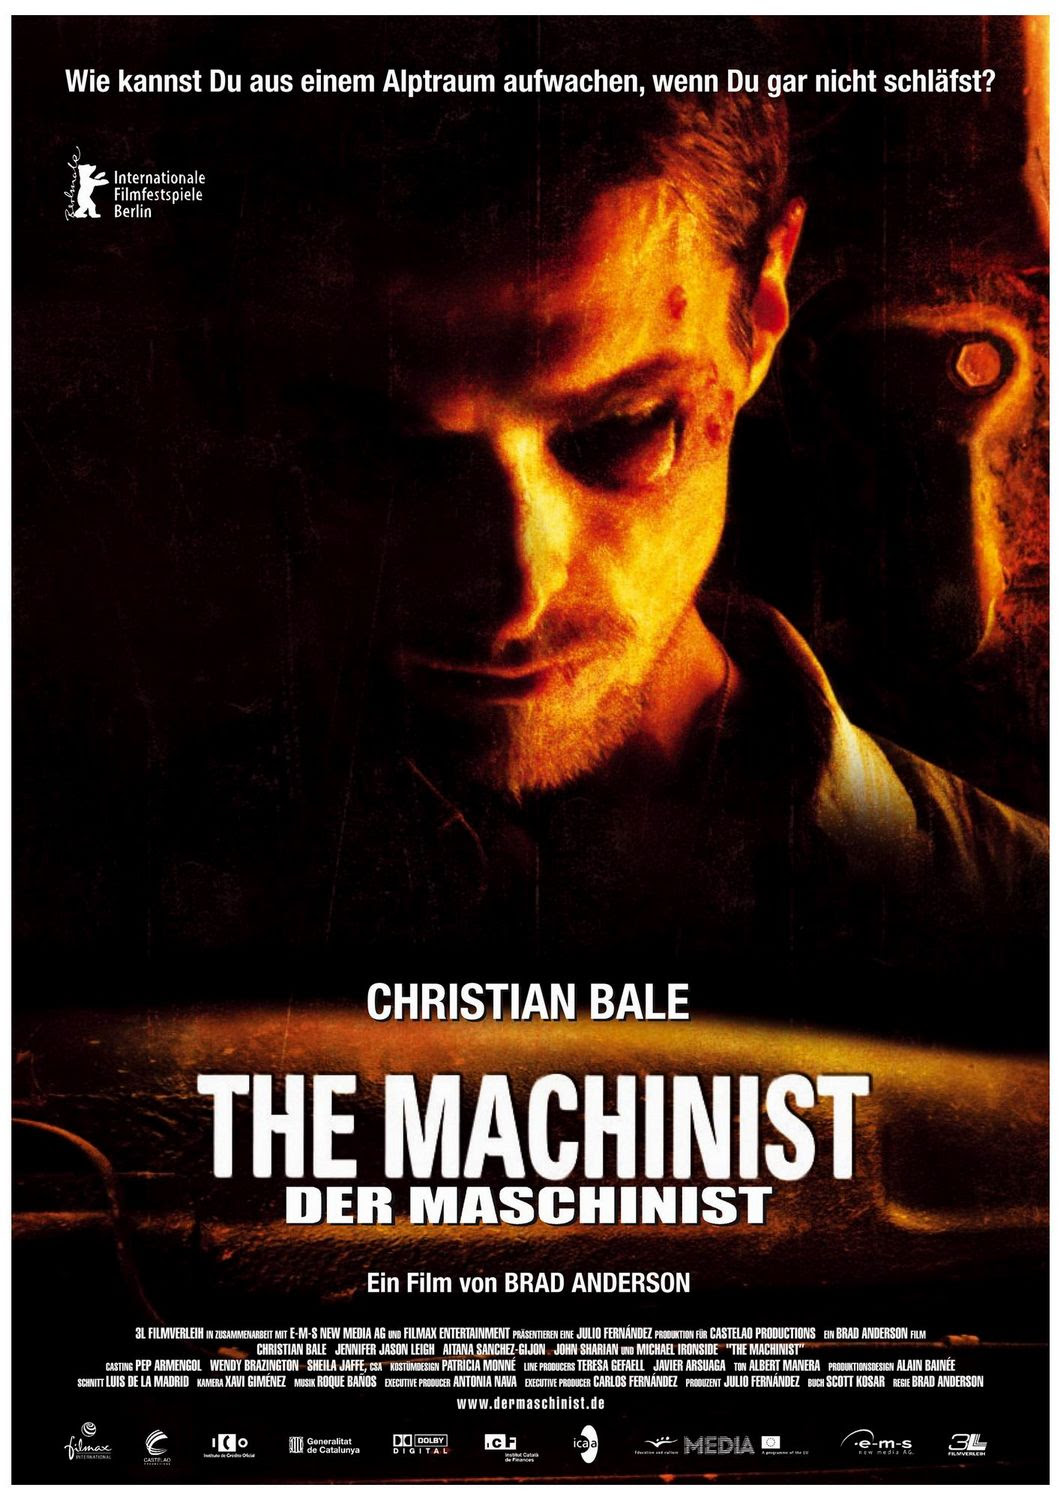 Extra Large Movie Poster Image for The Machinist